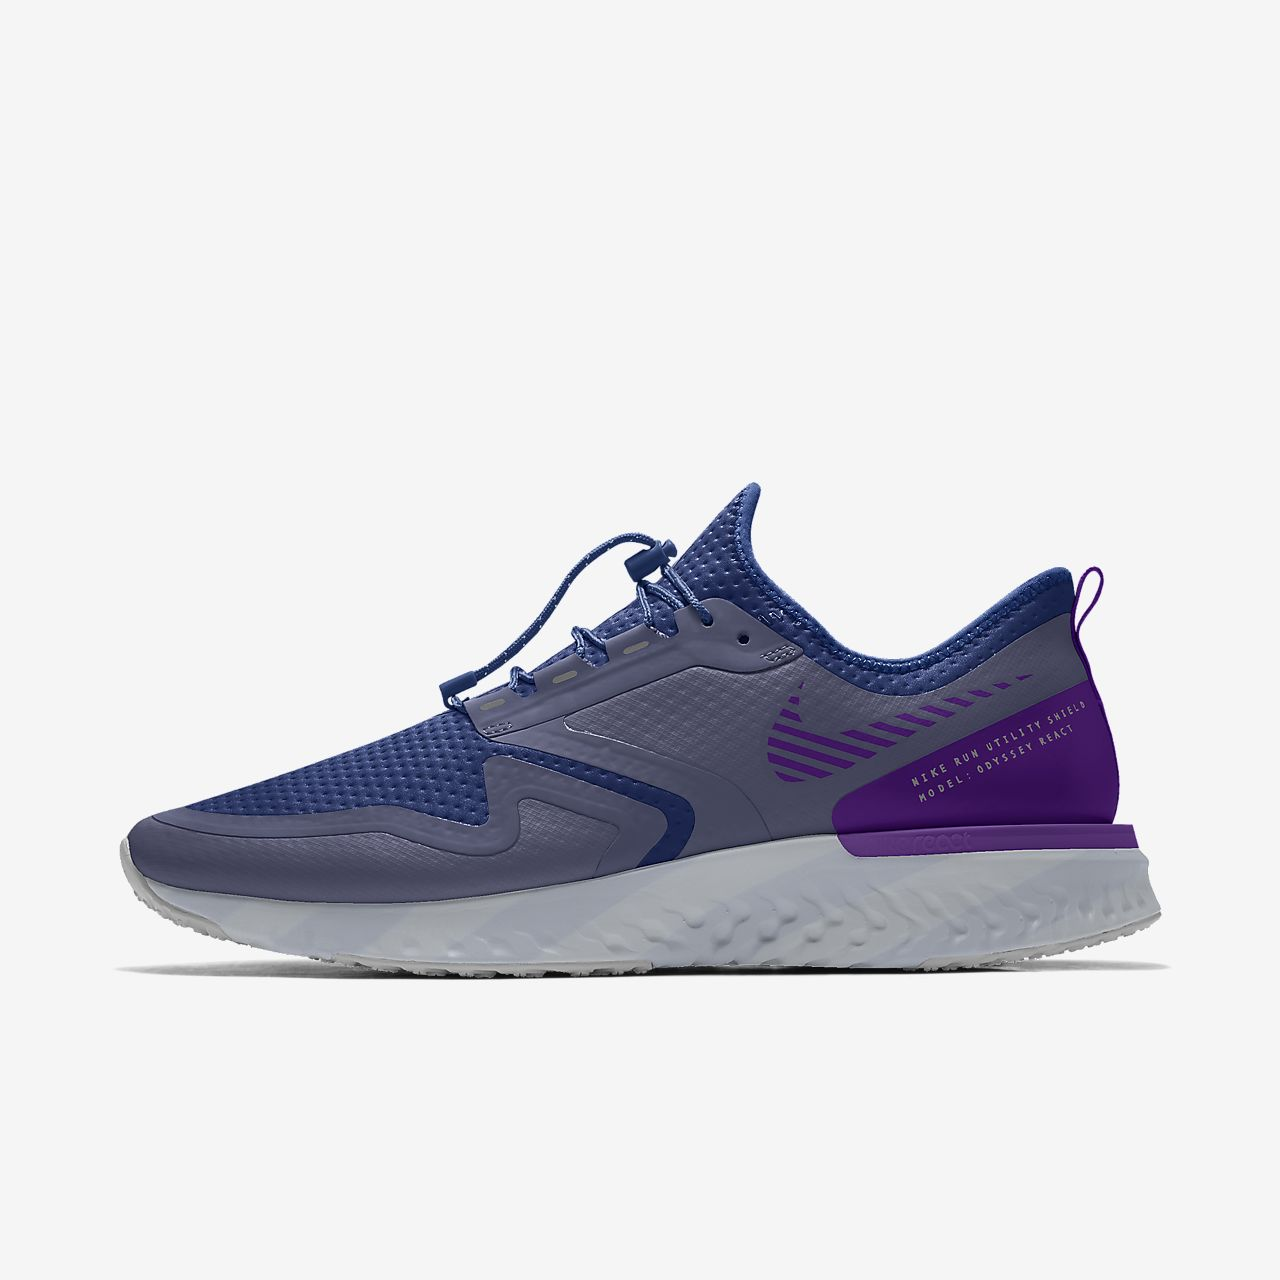 Specialdesignad löparsko Nike Odyssey React Shield By You för män